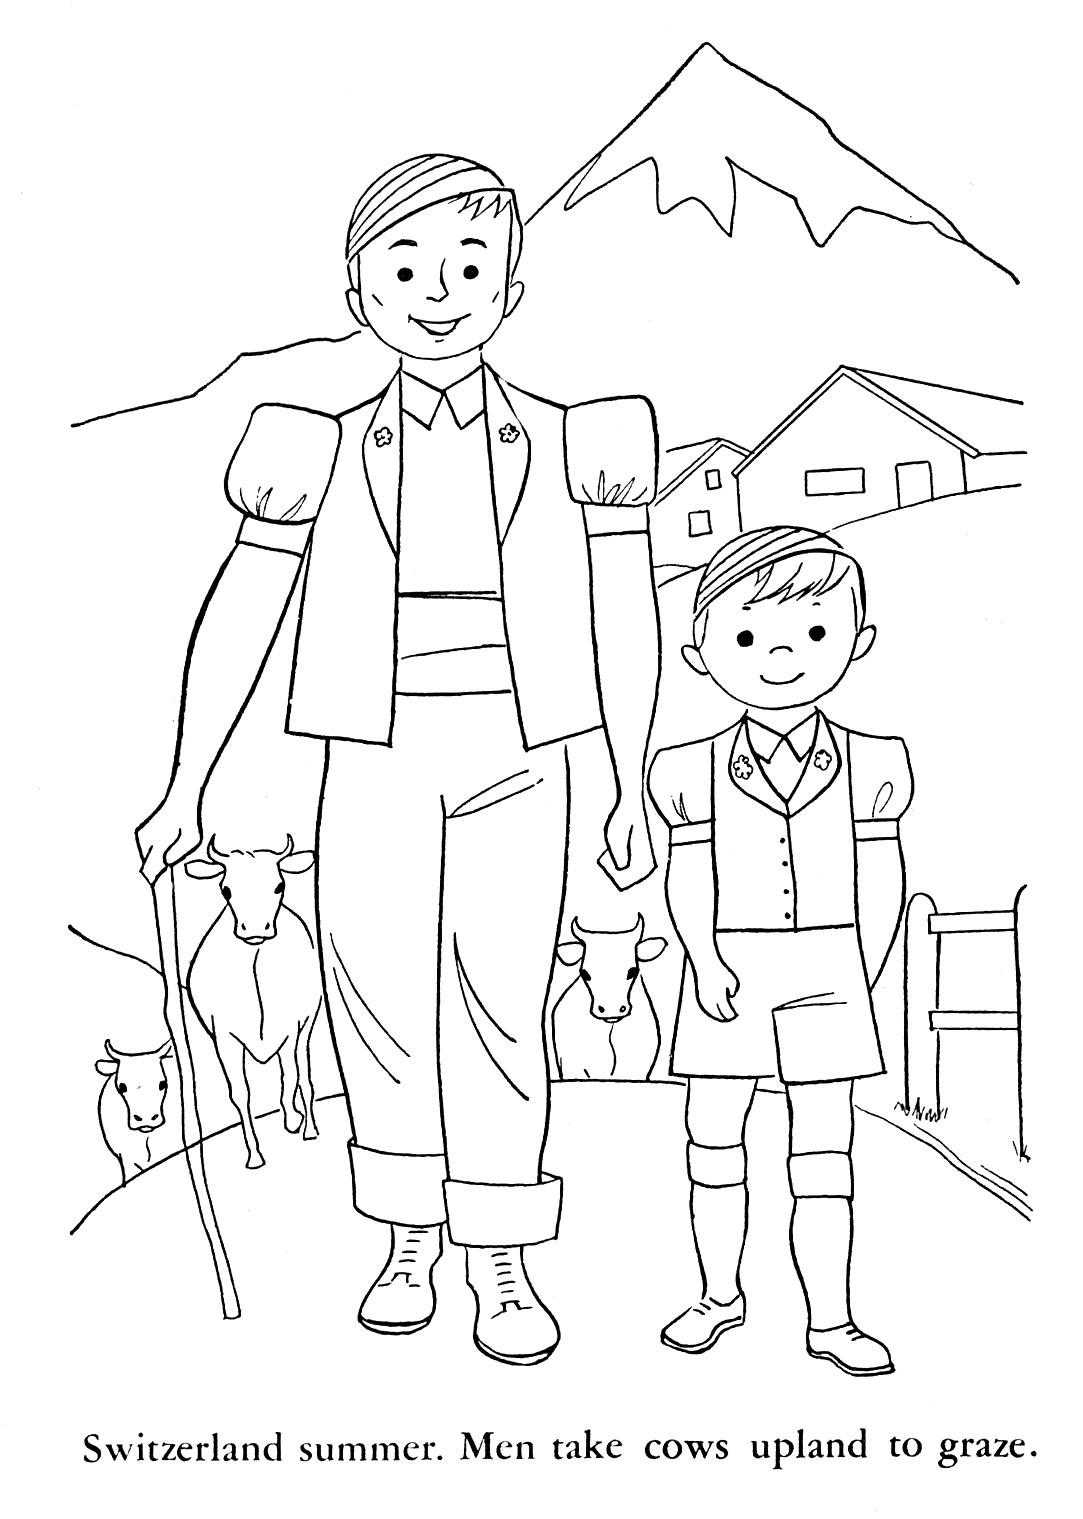 swiss scenes coloring pages - photo#5